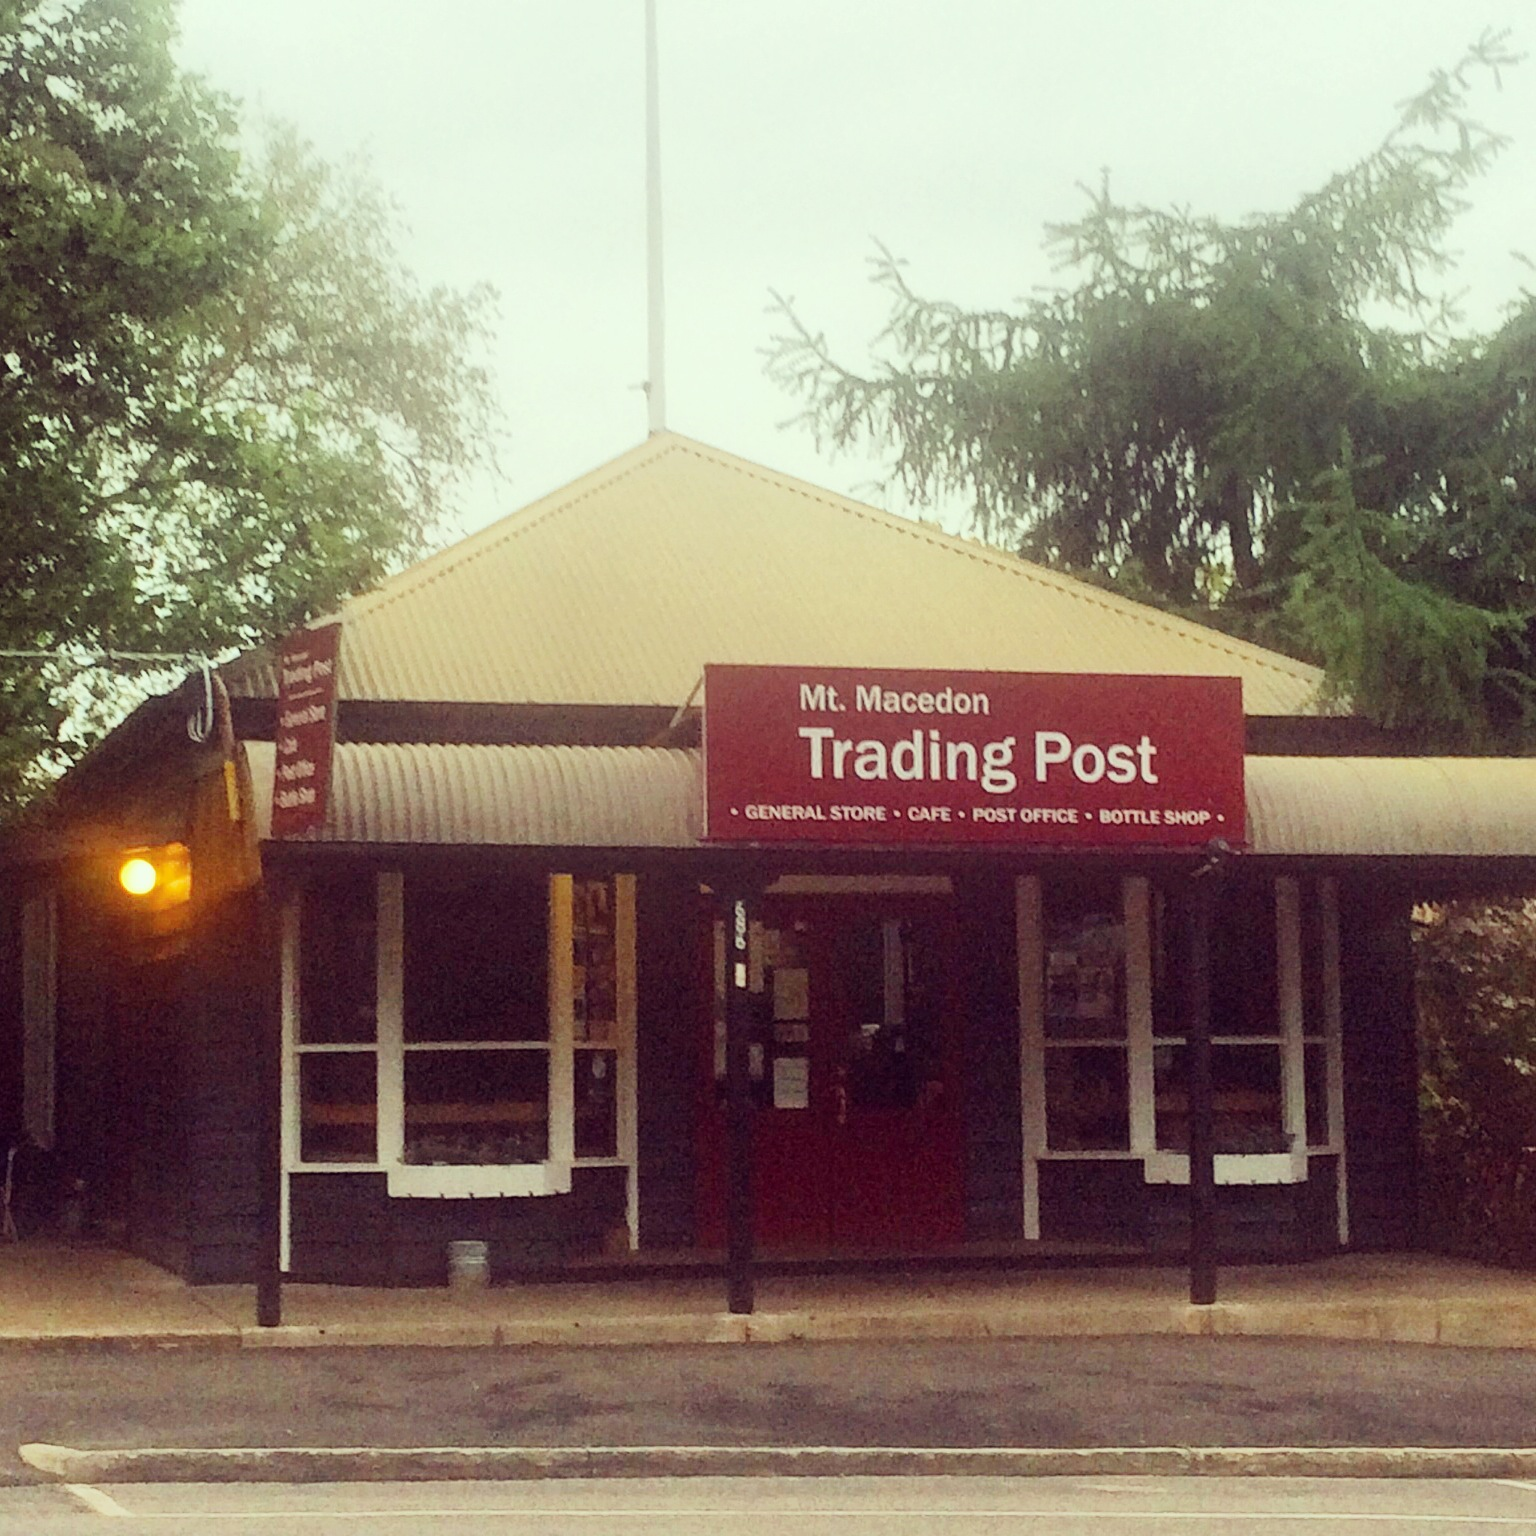 Mt Macedon Trading Post